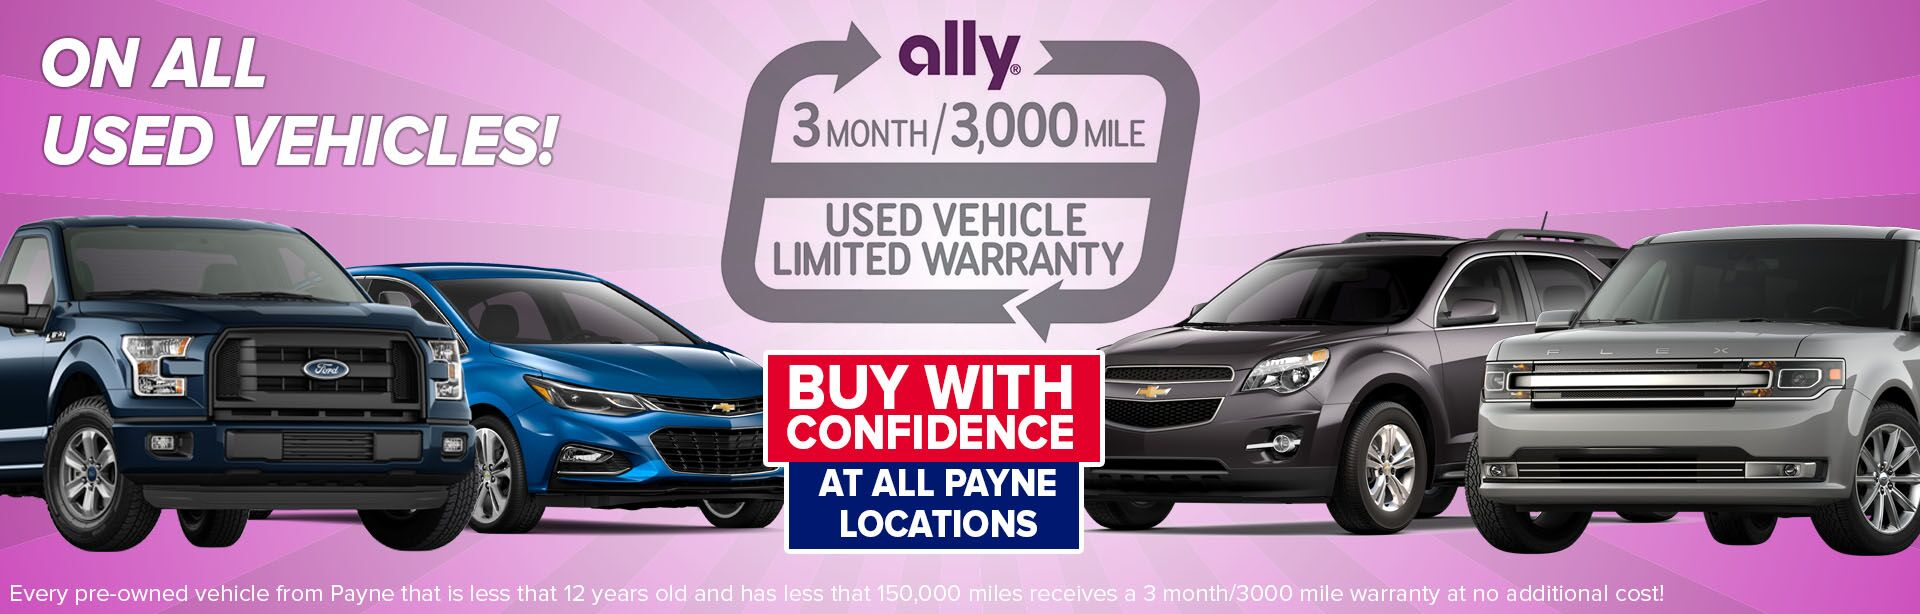 Ally 3 month 3,000 mile warranty